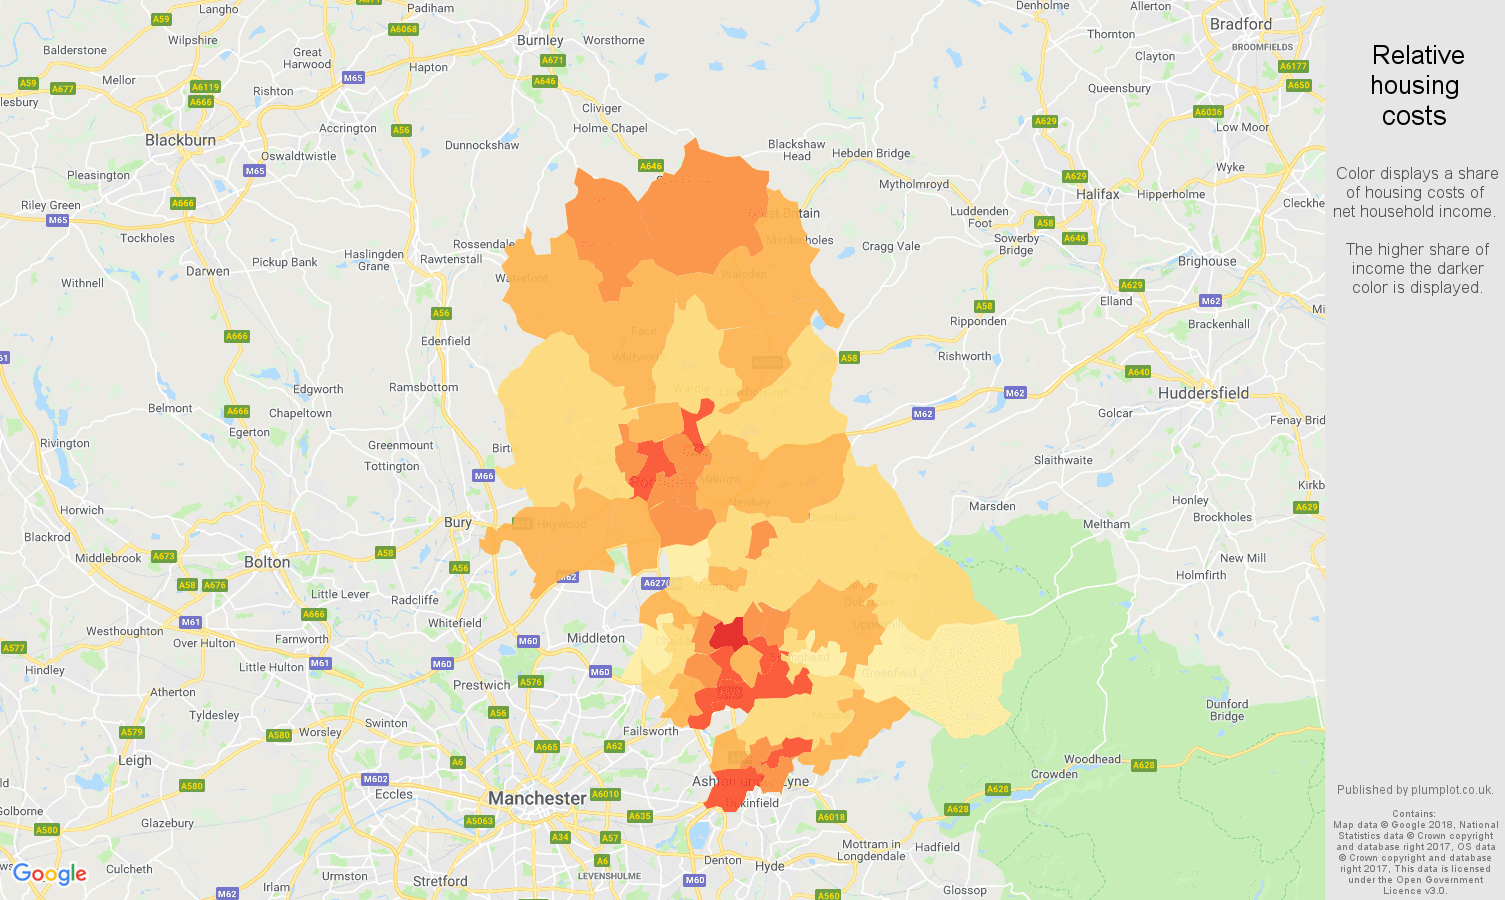 Oldham relative housing costs map